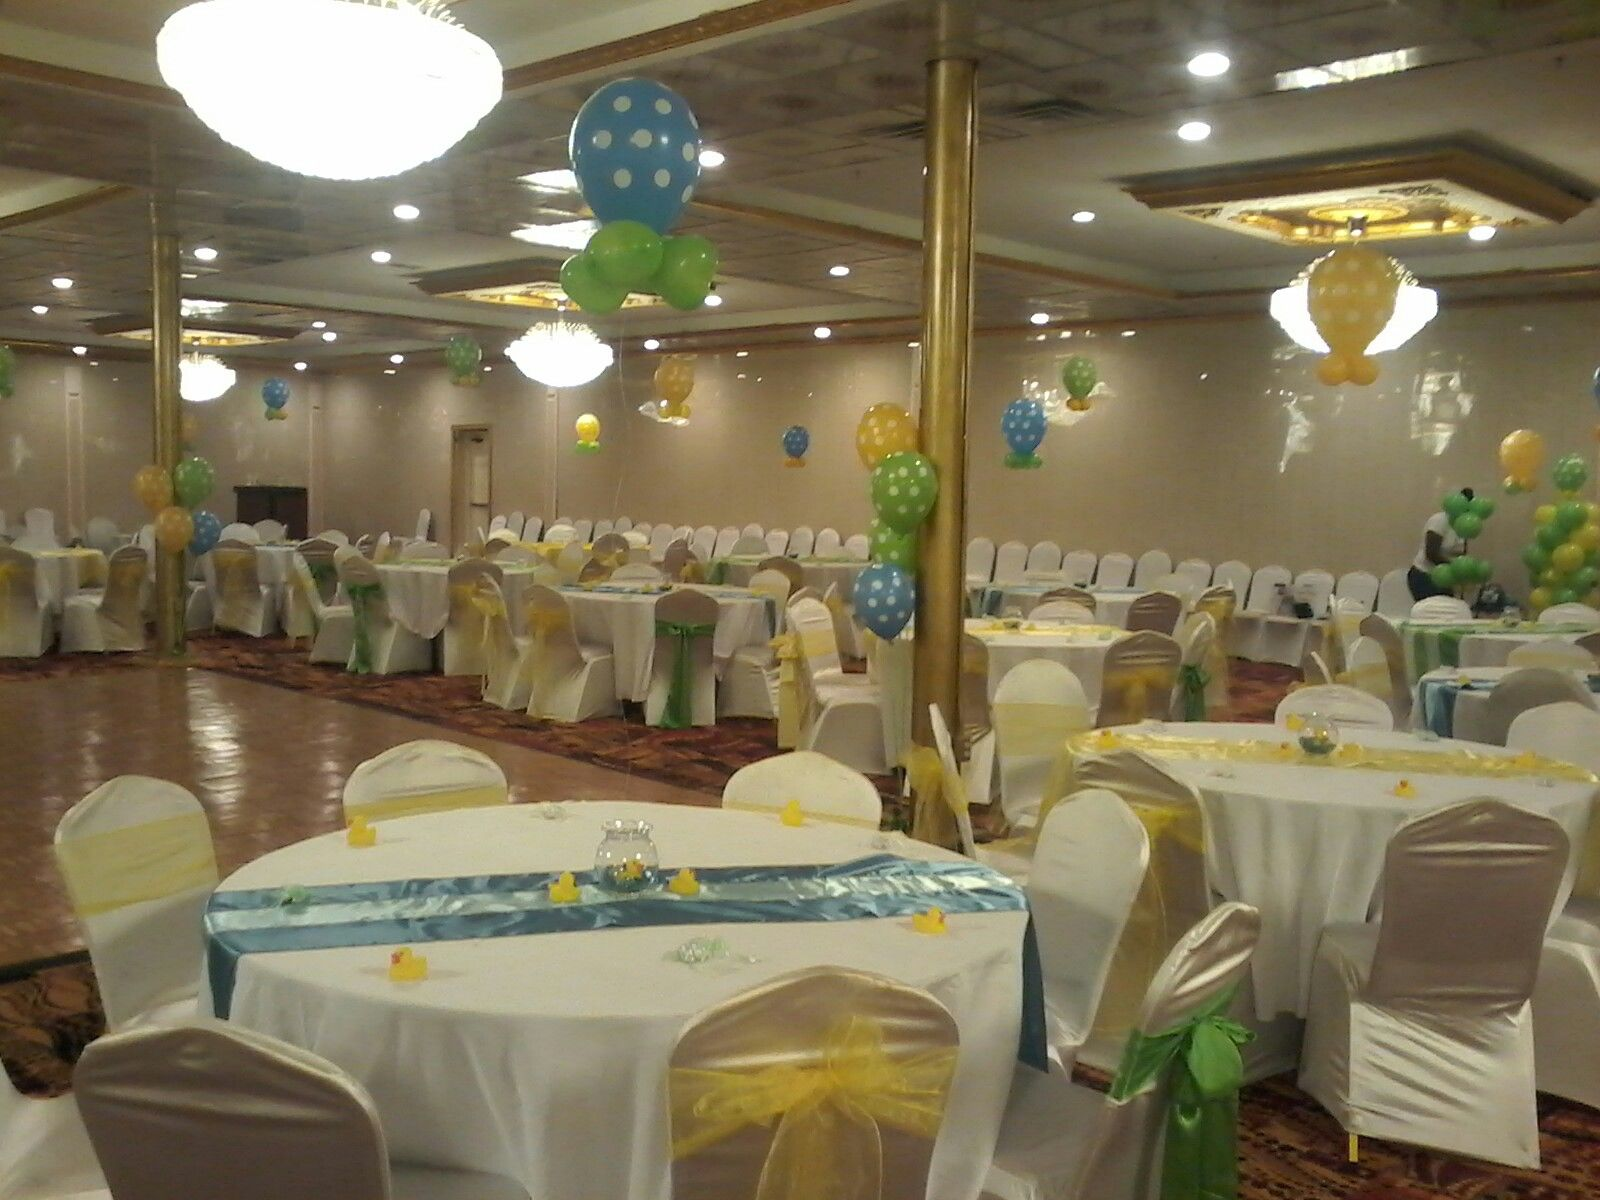 Clinton S Baby Shower Decorations ~ Yellow lime green and blue baby shower sheila moody s balloons